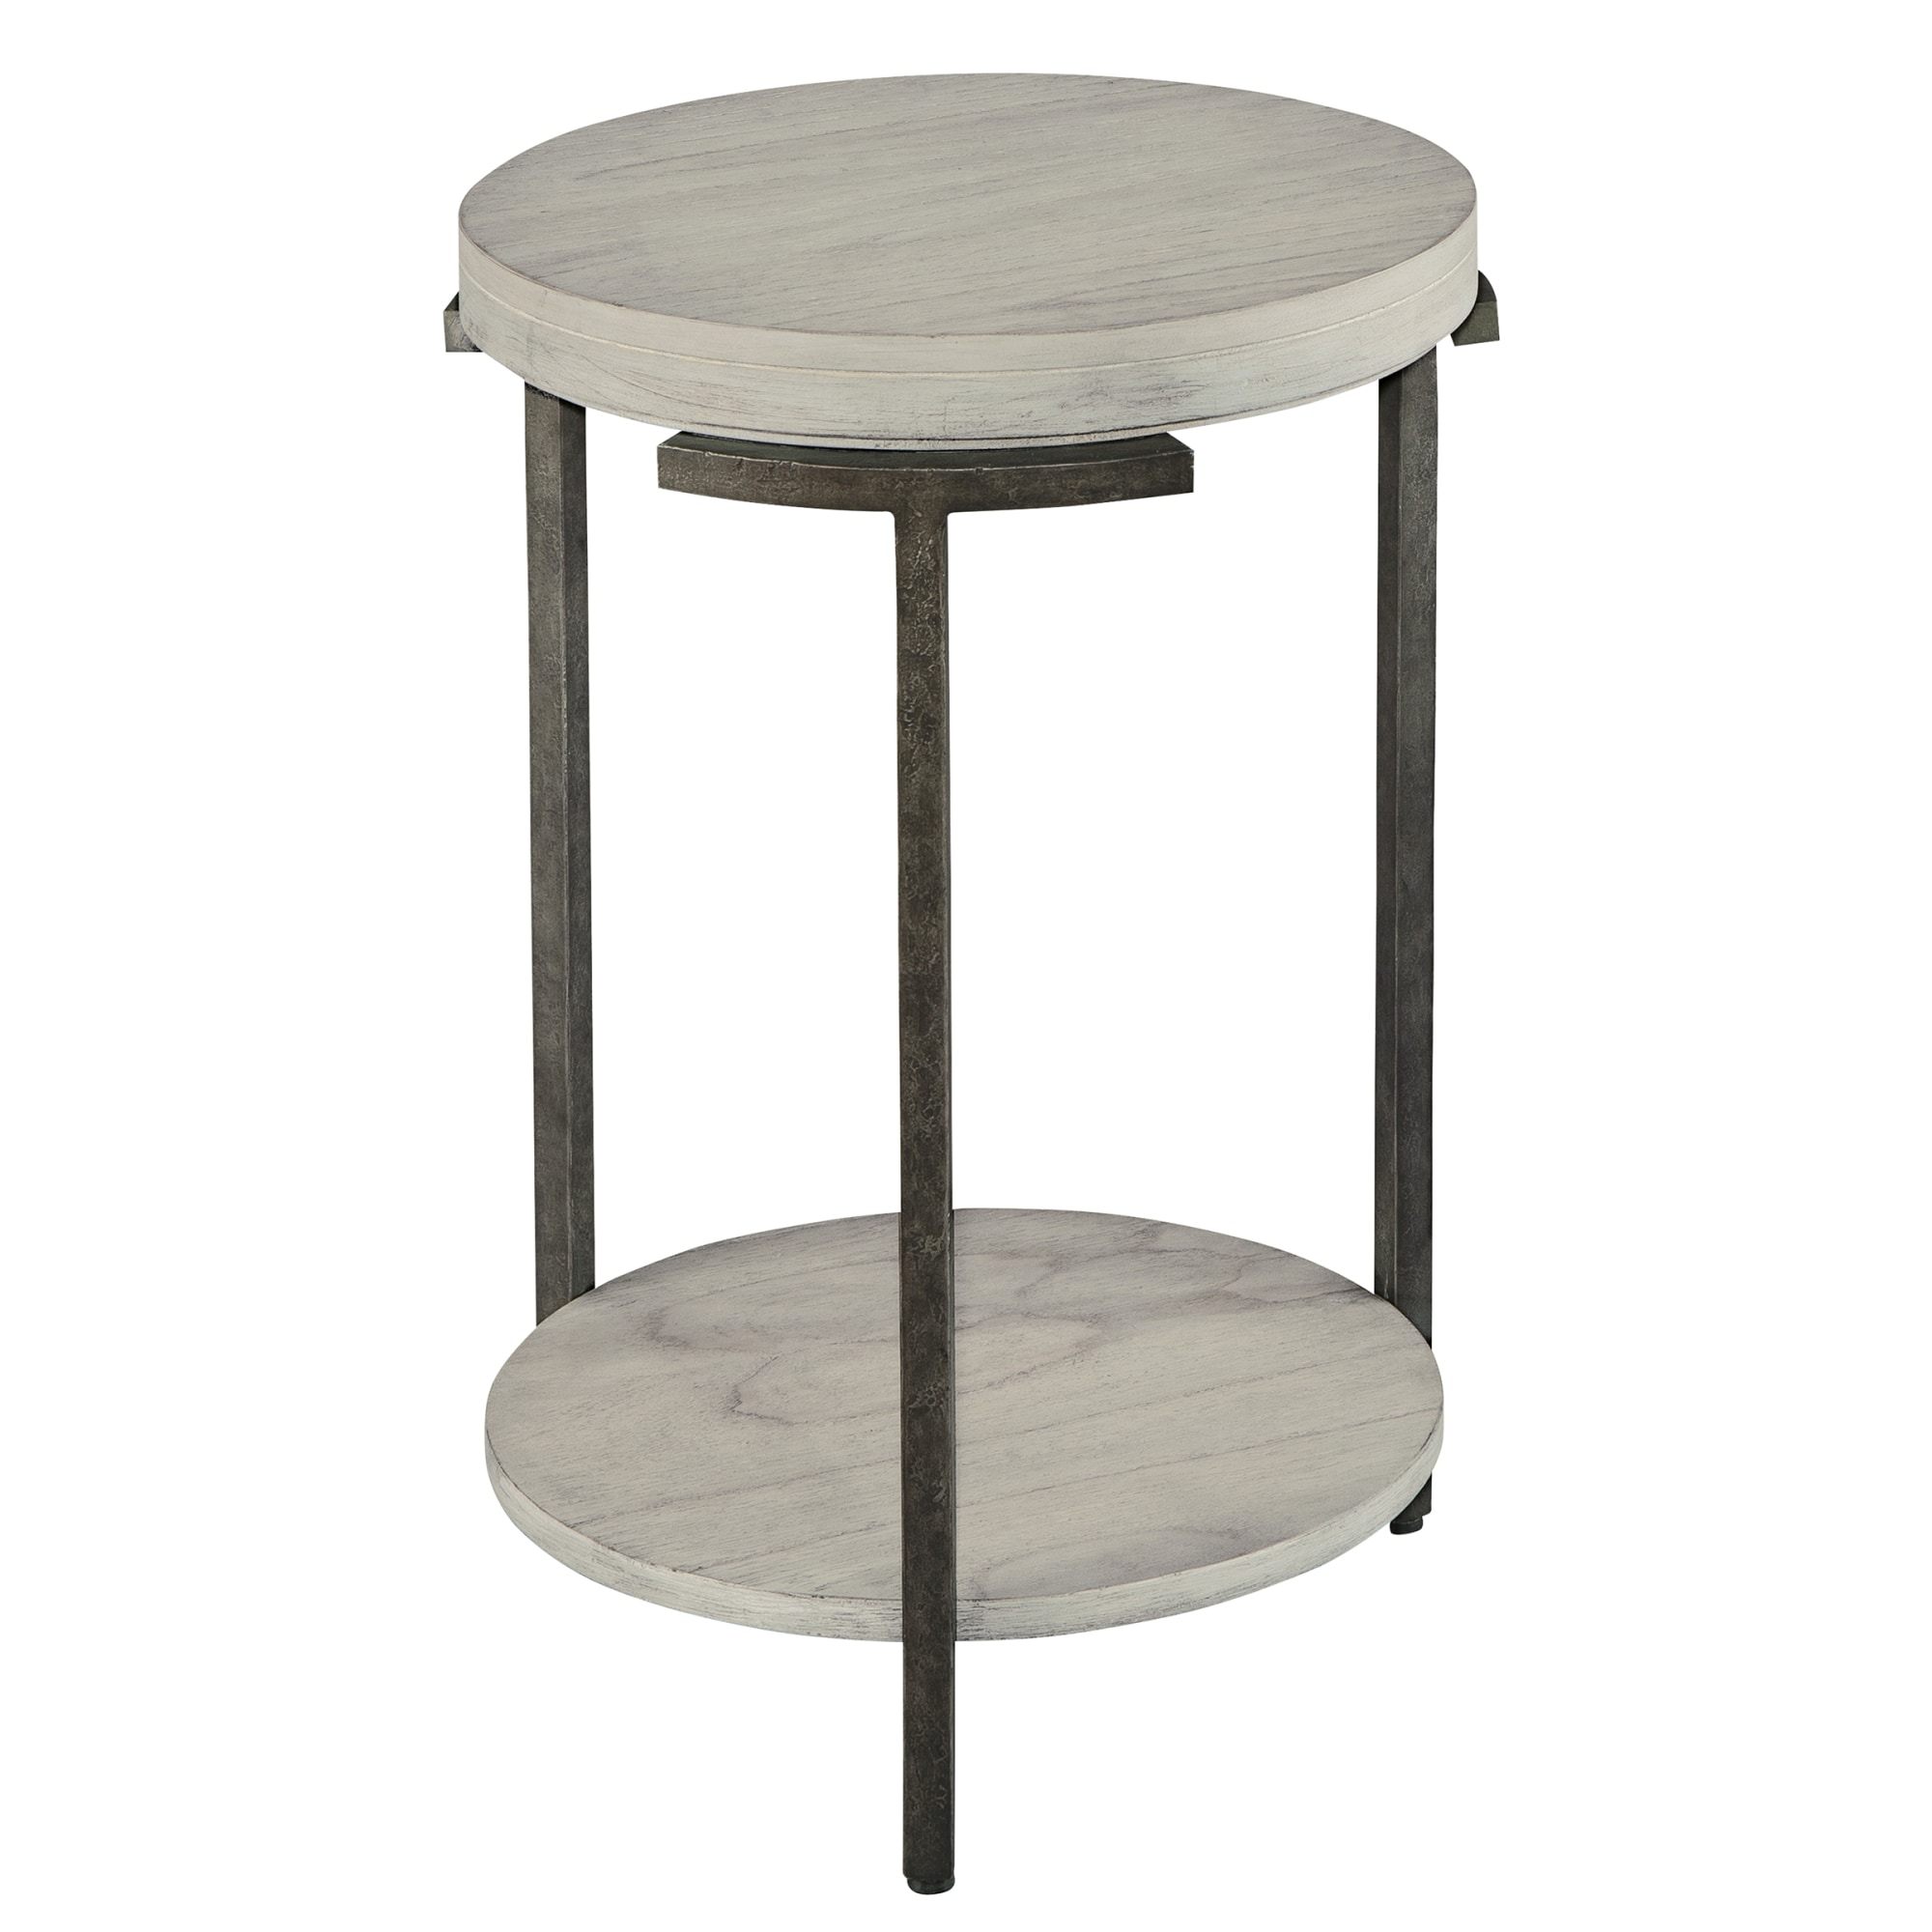 Image for 2-4105 Sierra Heights Chairside Table from Hekman Official Website